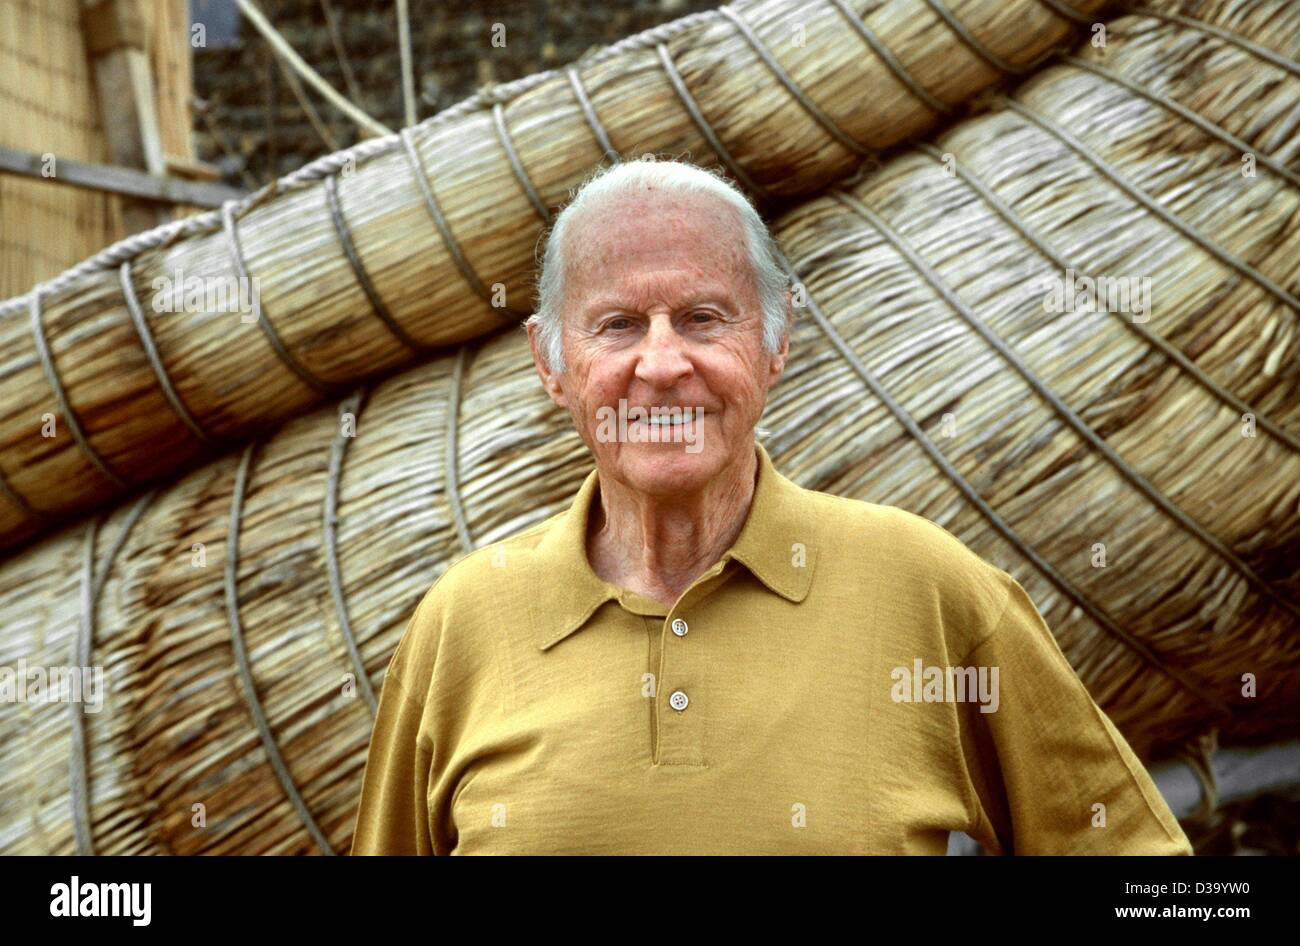 (dpa) - The Norwegian explorer, ethnologist and archaelogist Thor Heyerdahl died aged 87 in his house near Alassio, Stock Photo